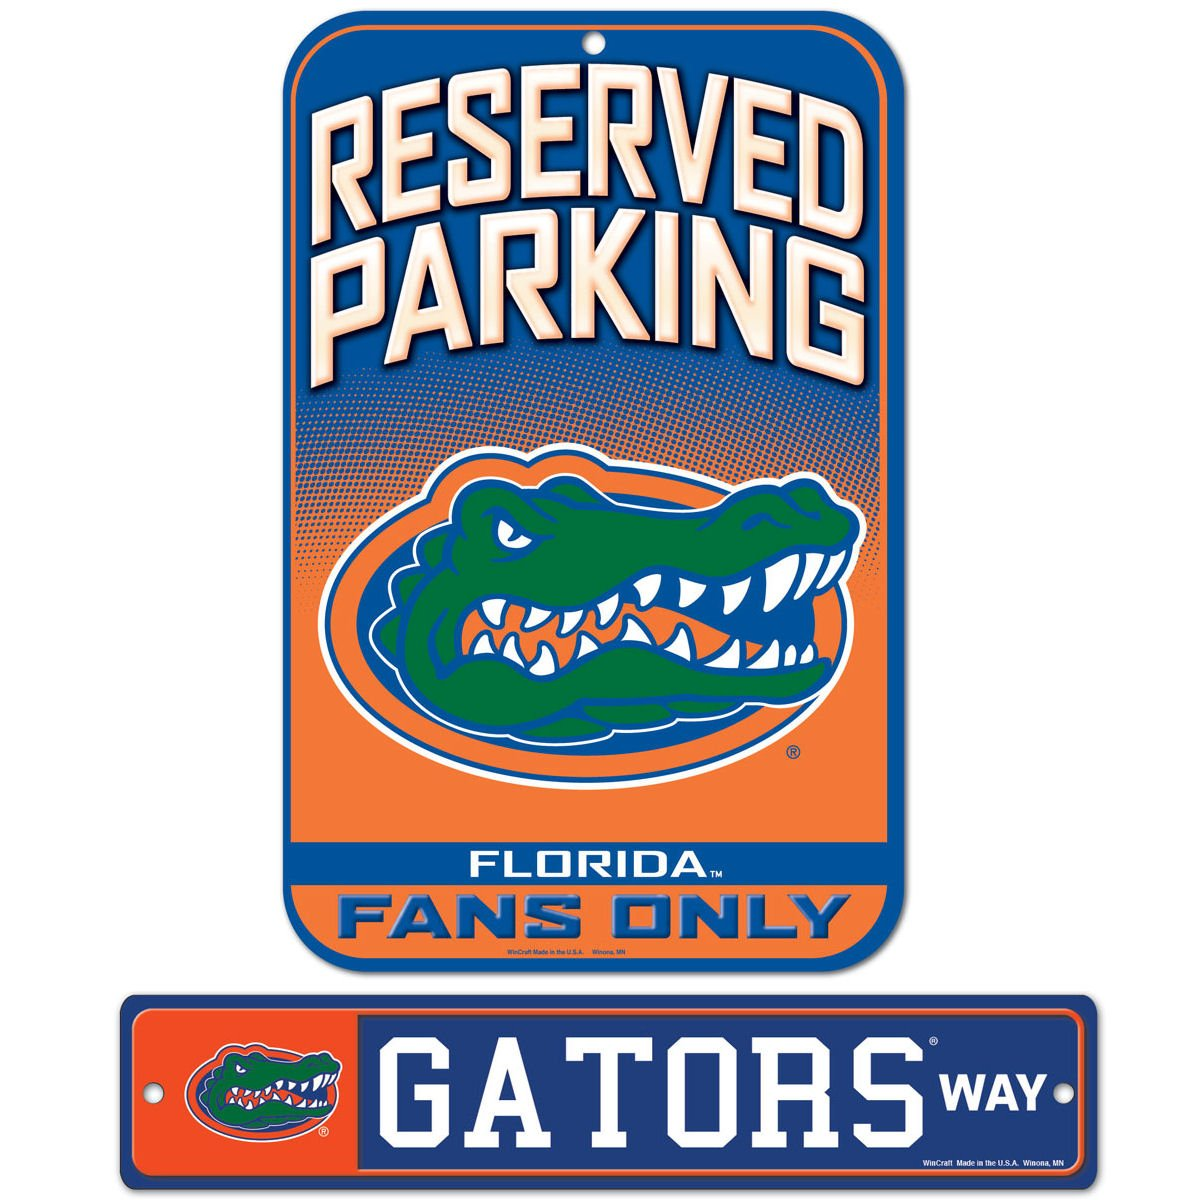 WinCraft Bundle - 2 items: University of Florida Plastic Street Sign and Reserved Parking Sign